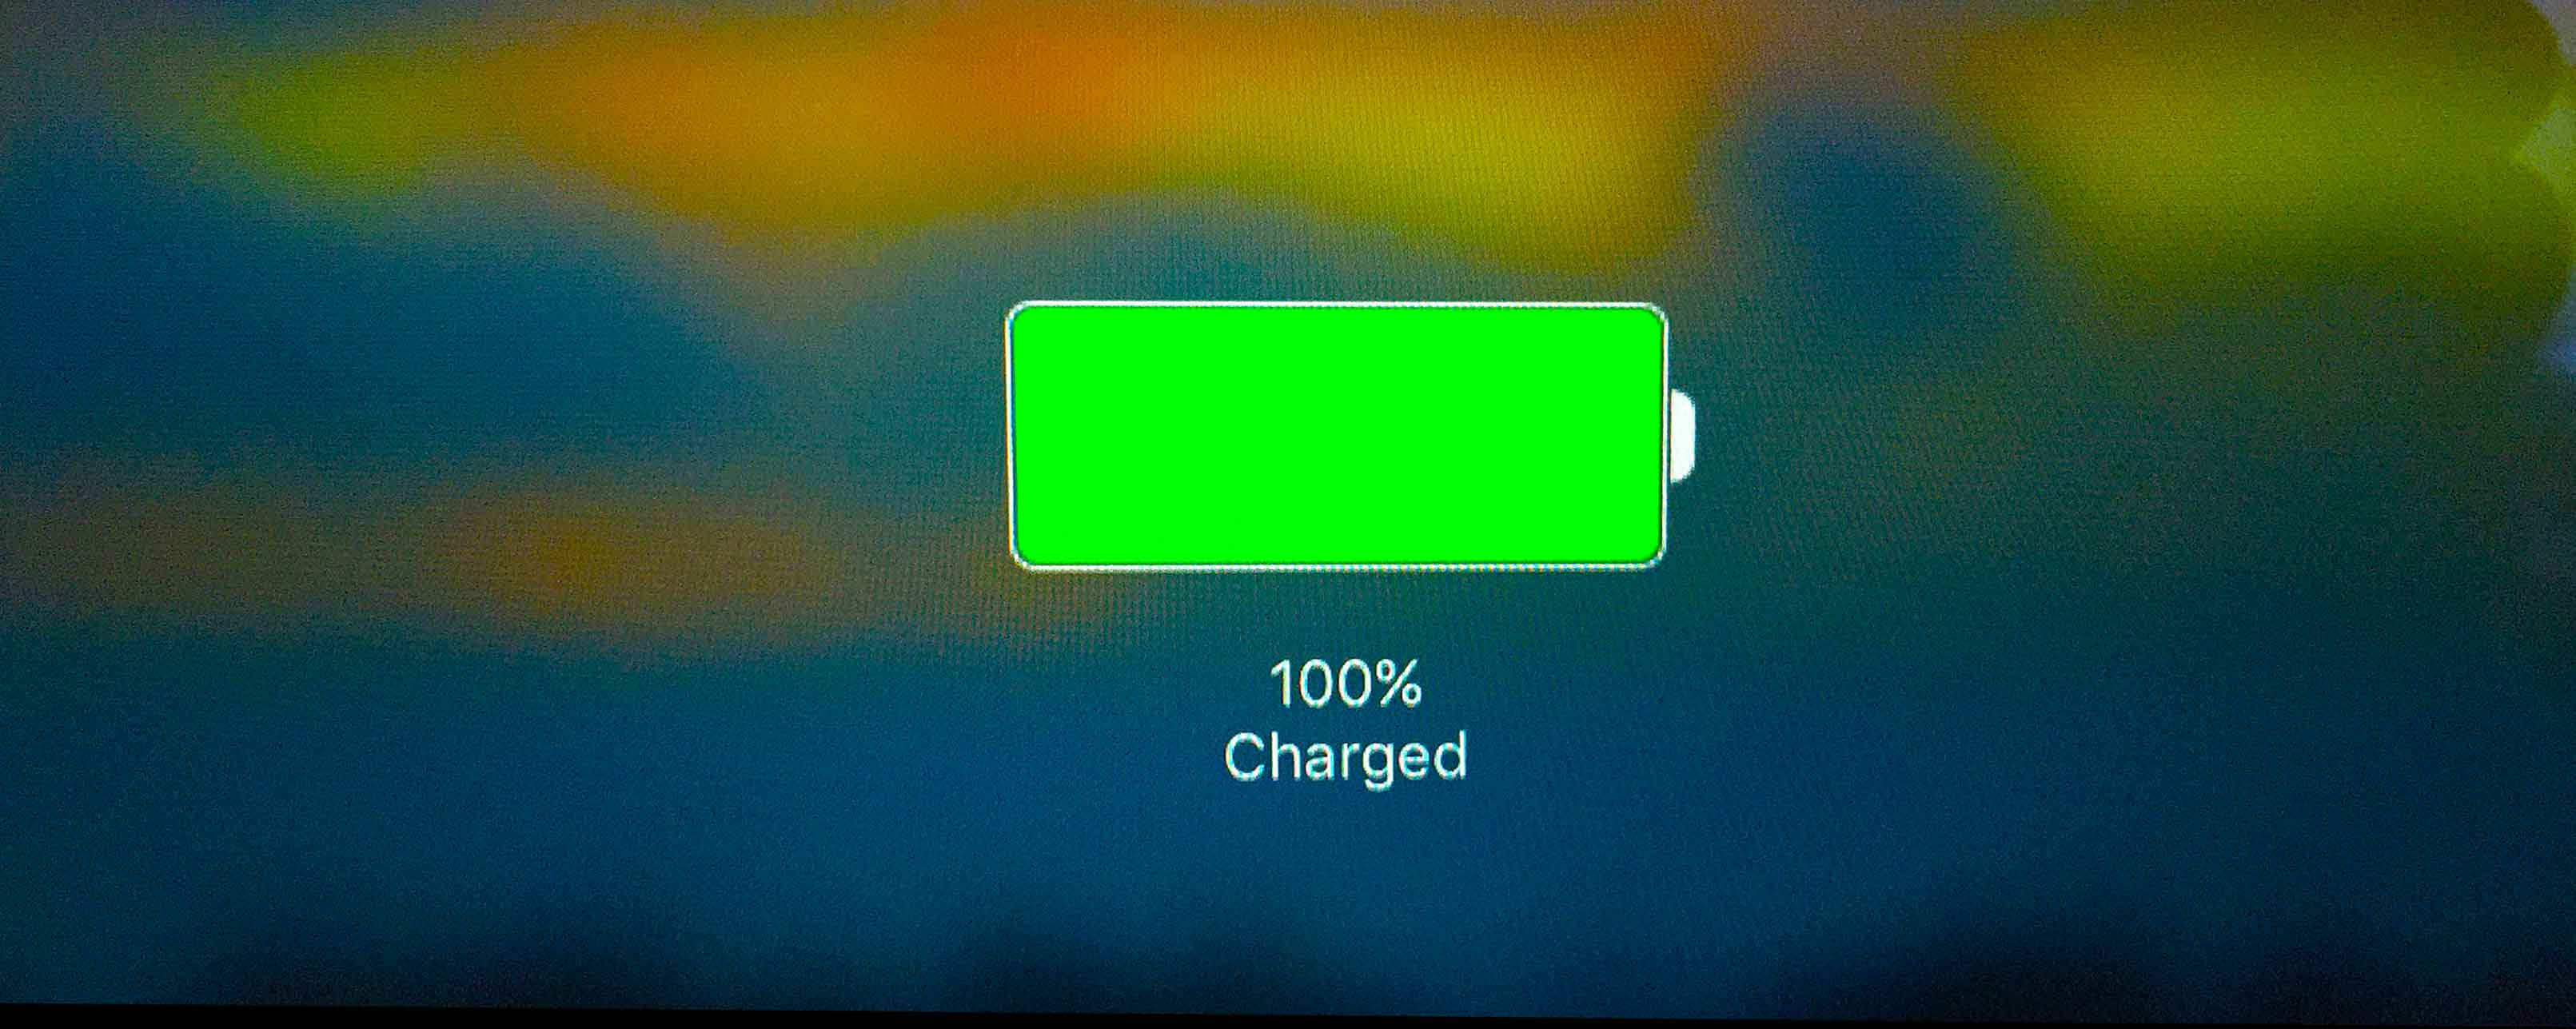 Battery Symbol Iphone Make Your Mac Chime When Power Is Attached And See A